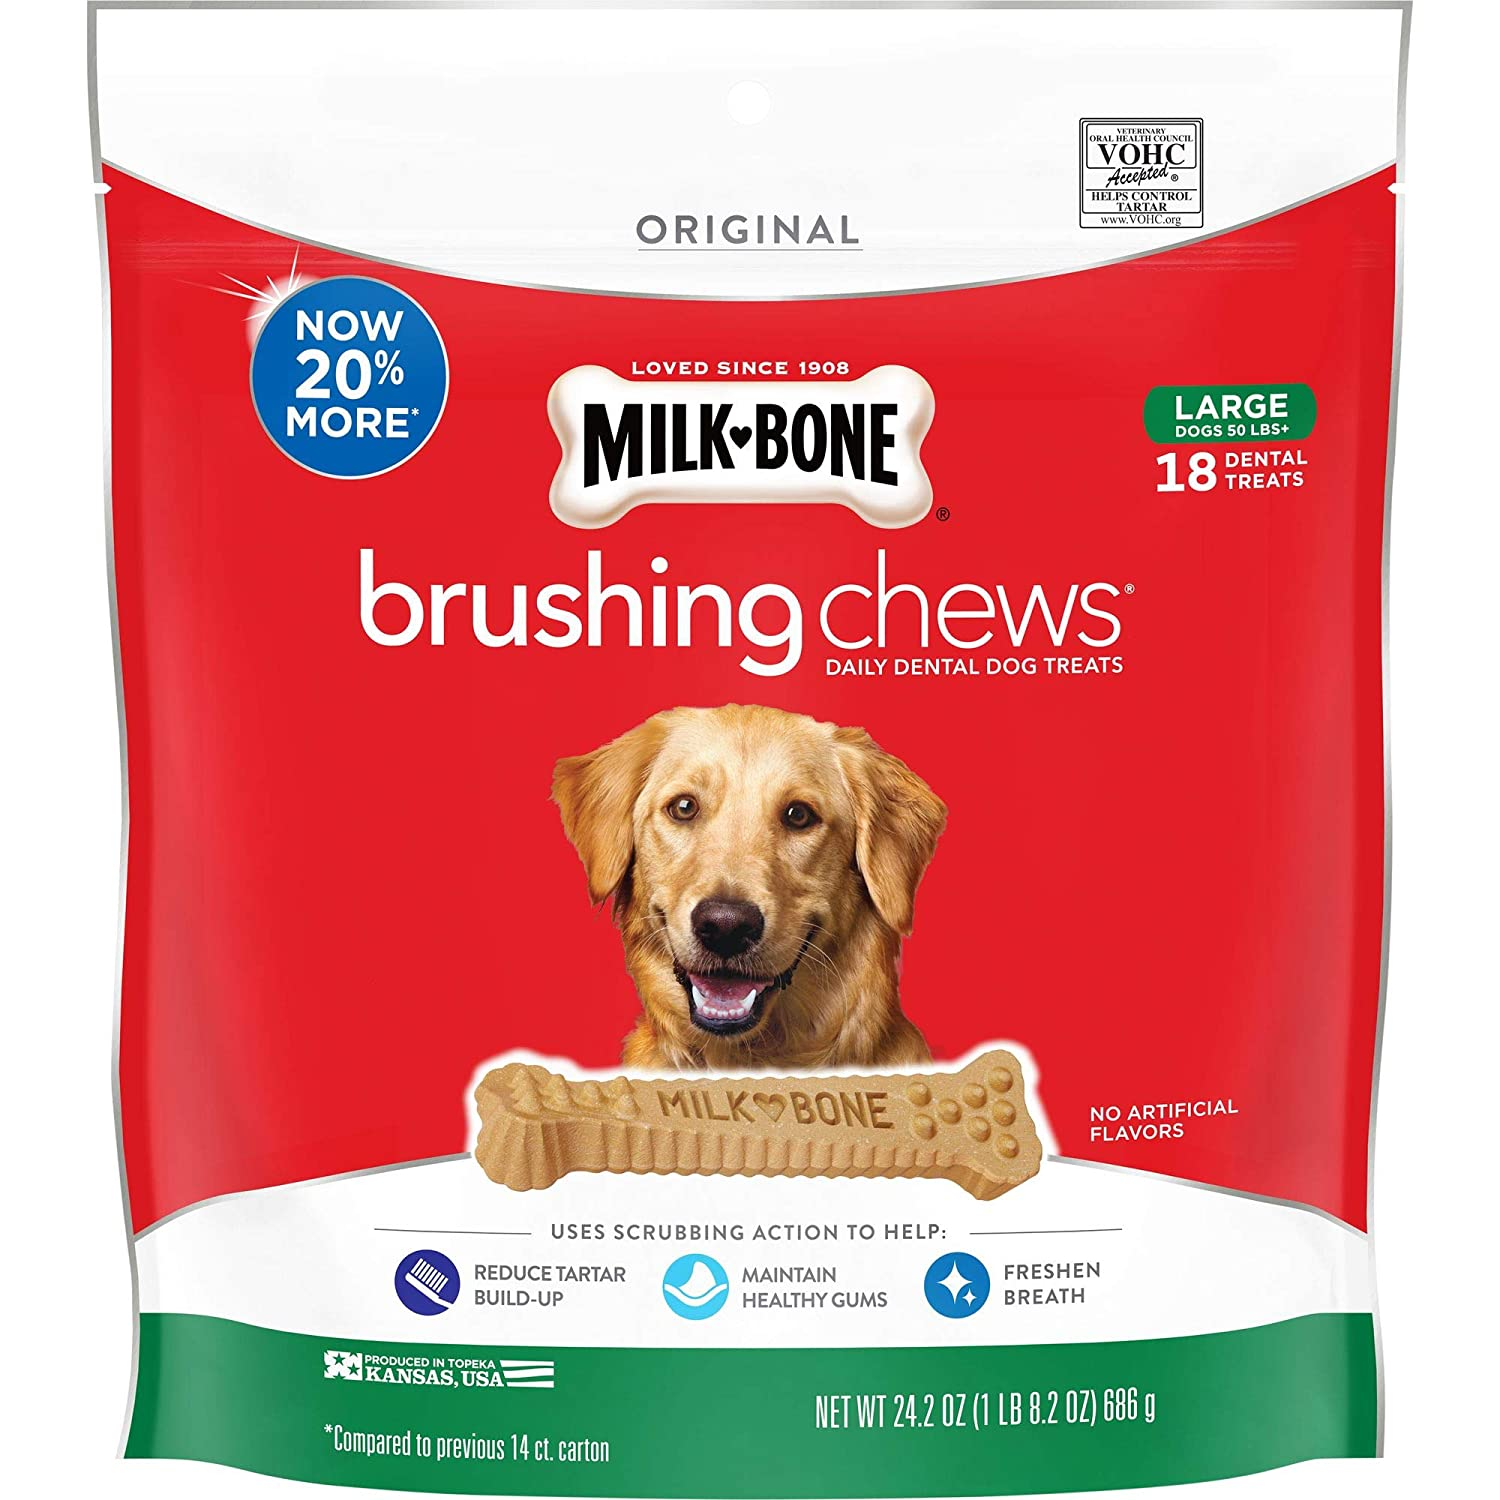 Large Breed (18 Bones) Milk-Bone Brushing Chews Daily Dental Dog Treats, Large, 24.2 Ounce Pouch